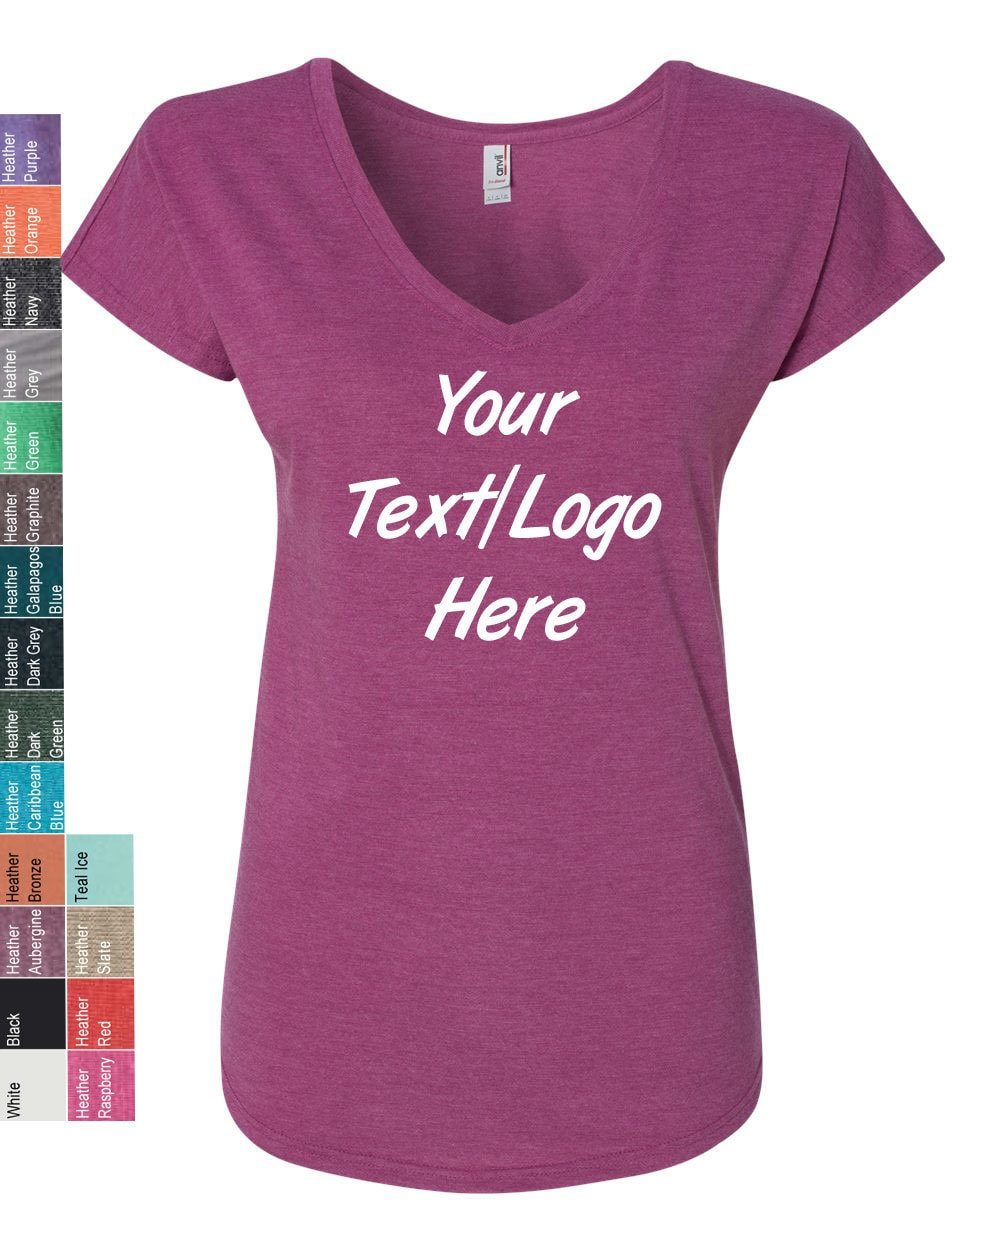 Customized Anvil Ladies Triblend V Neck T Shirt 6750vl Custom Personalized Anvil Tshirt Available All Colors Sizes